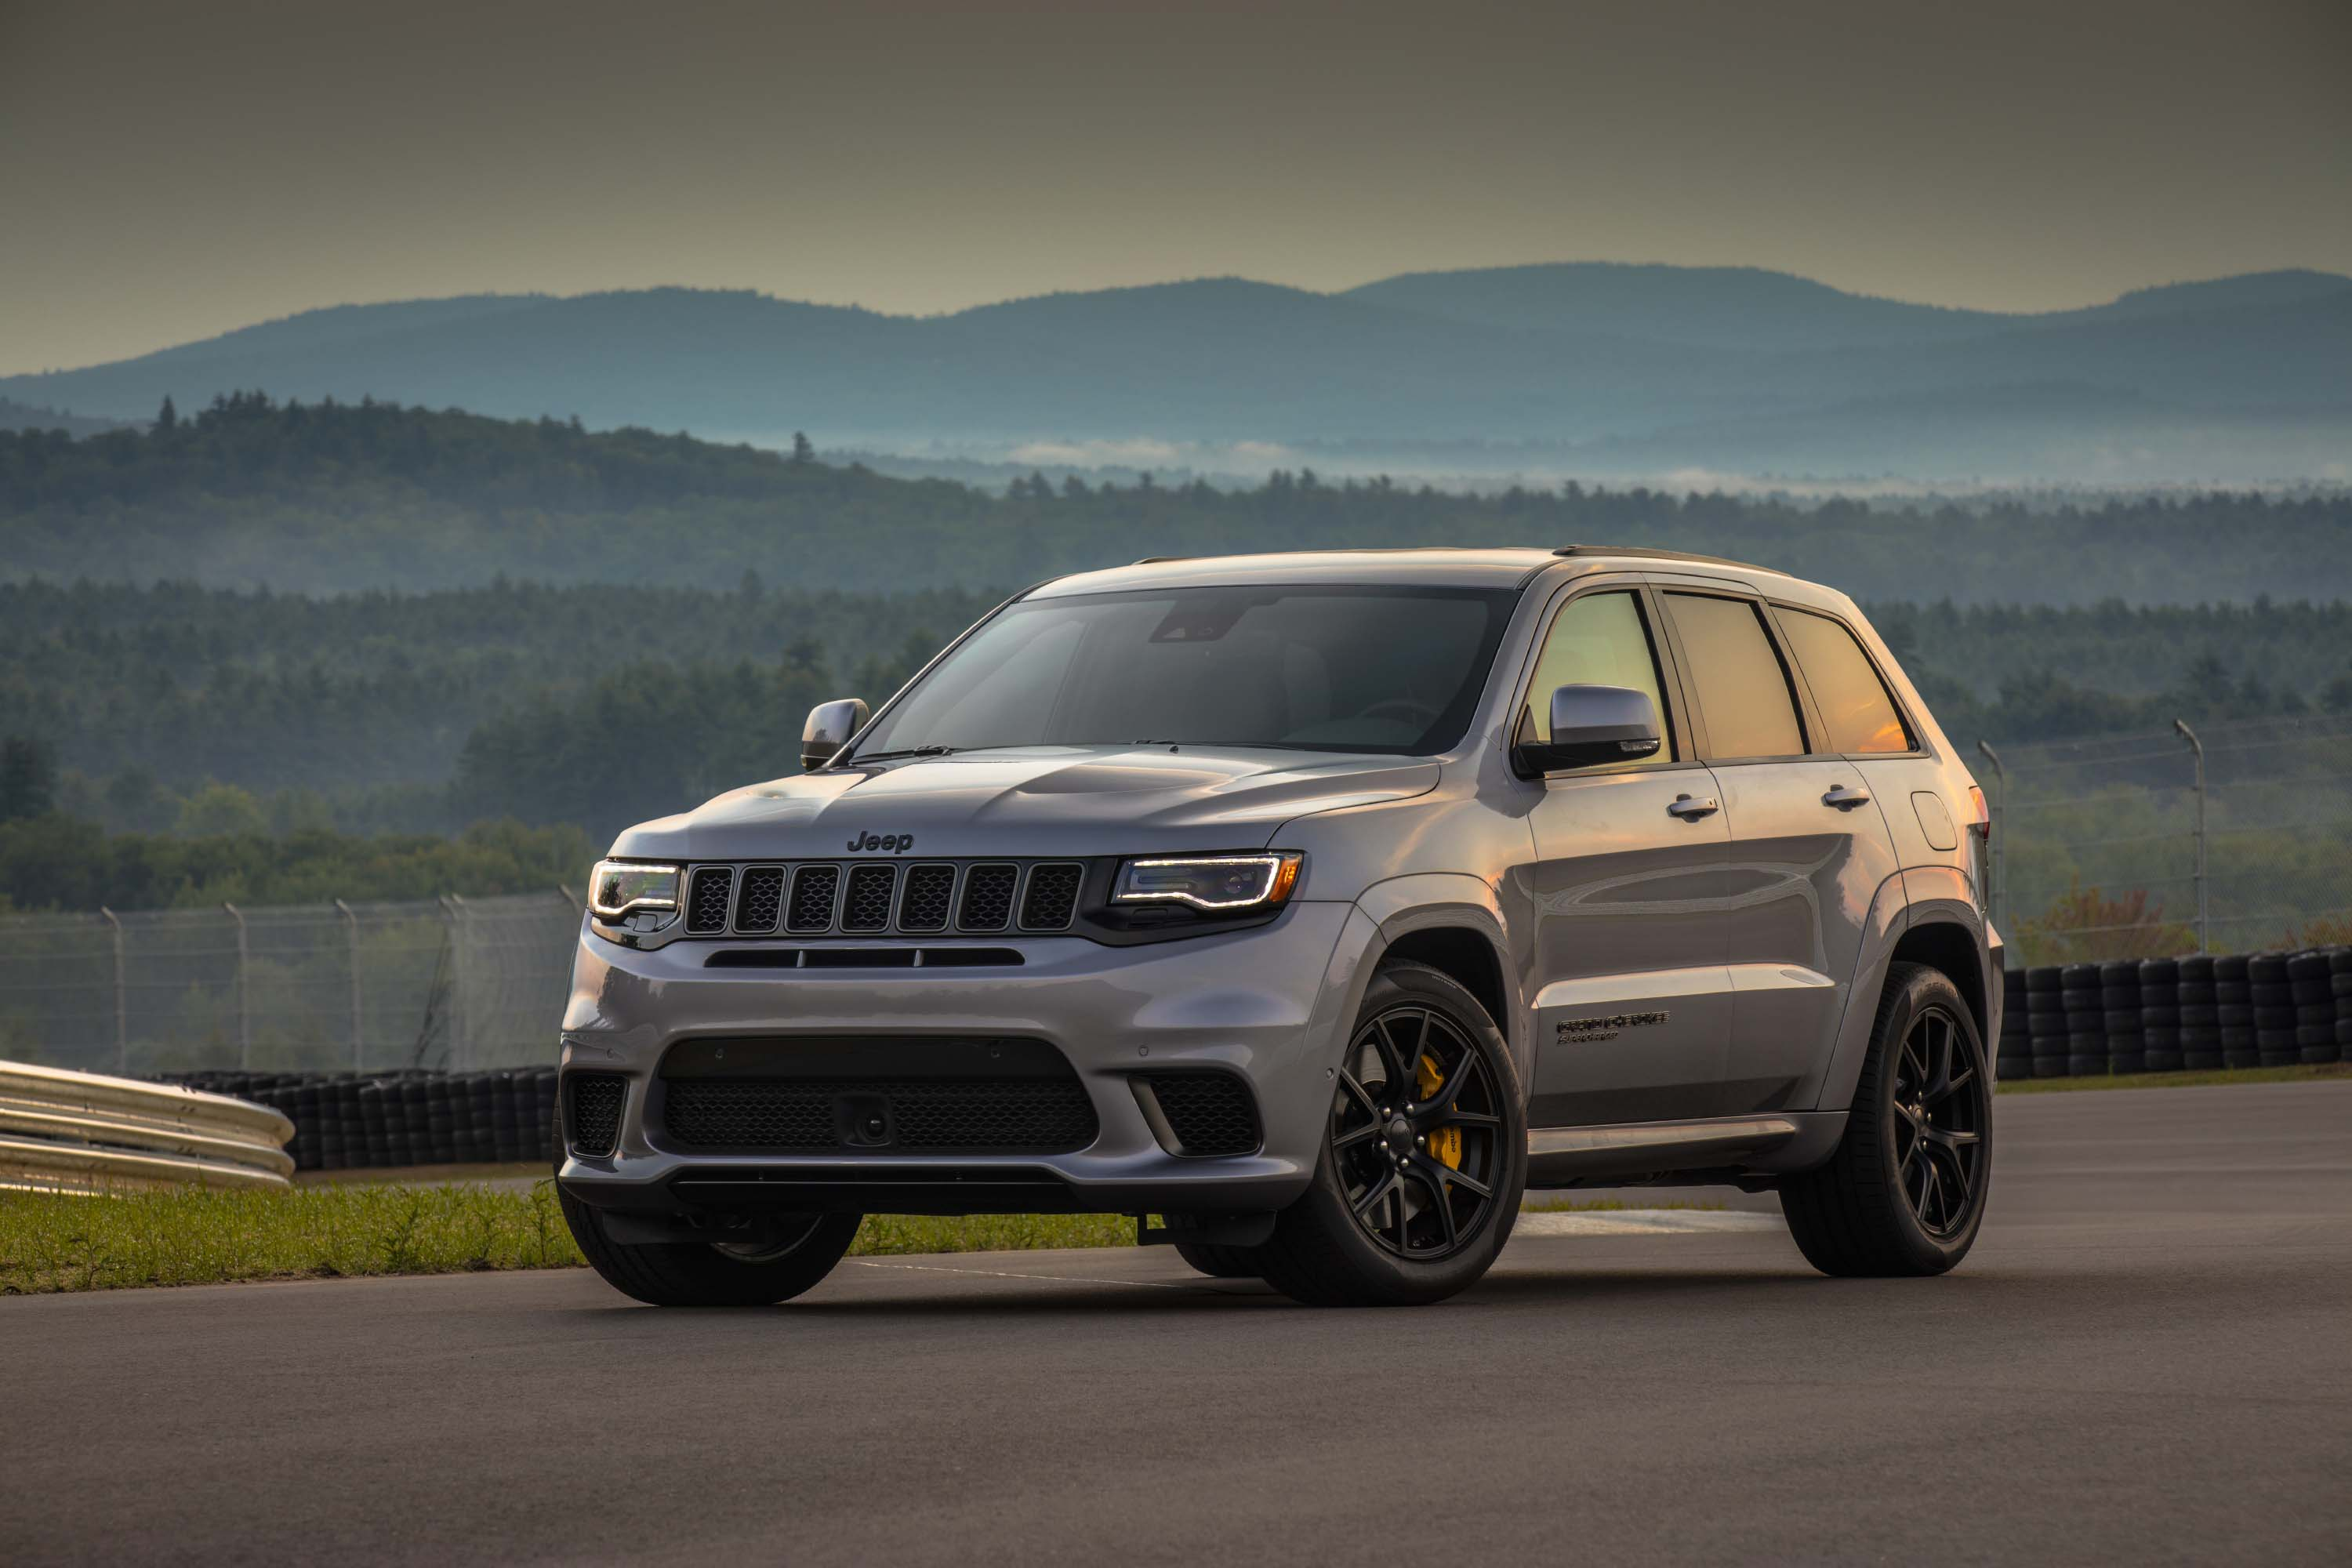 Jeep Grand Cherokee Best Suv To Buy 2020